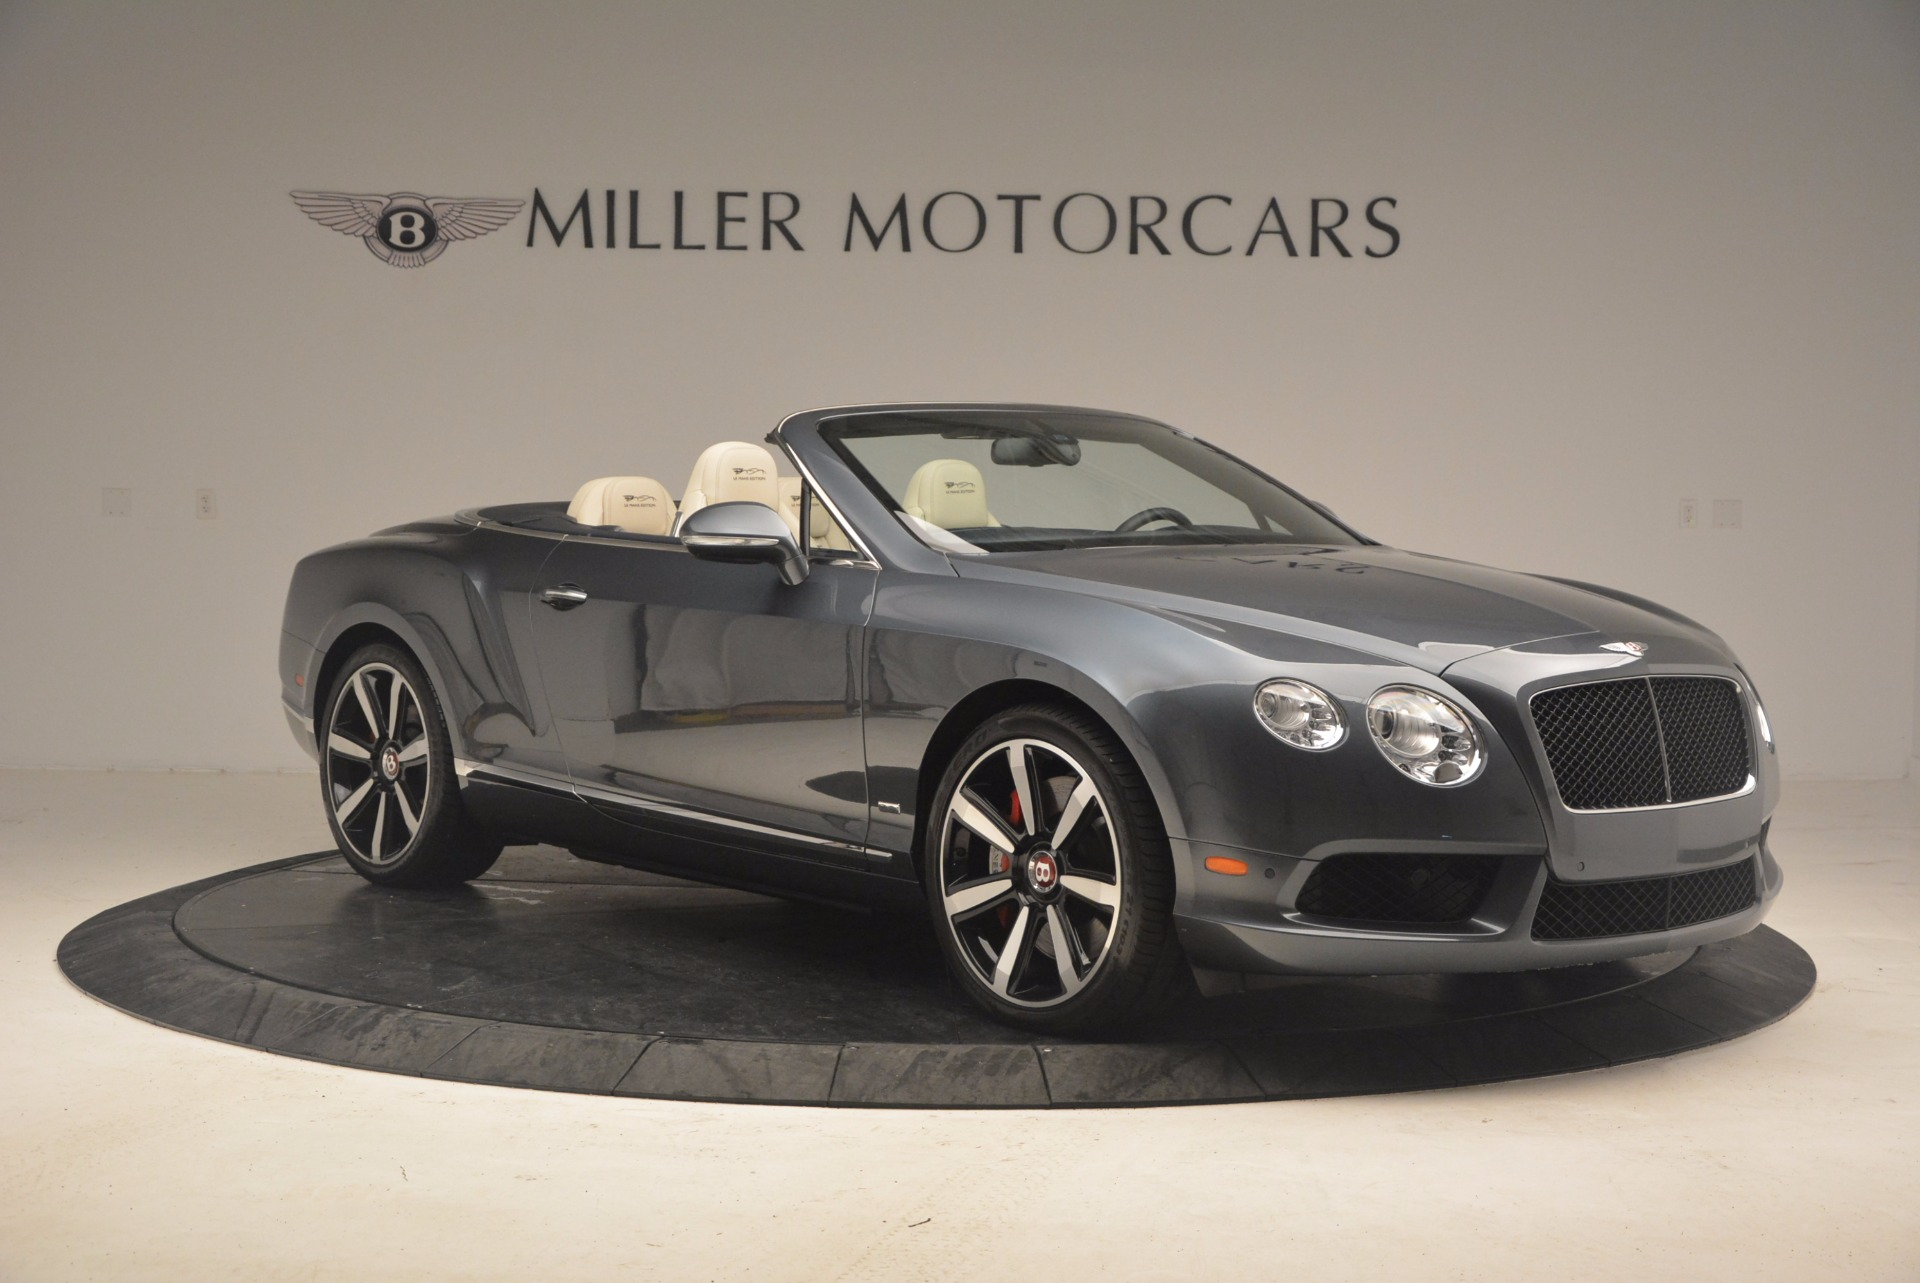 Used 2013 Bentley Continental GT V8 Le Mans Edition, 1 of 48 For Sale In Greenwich, CT. Alfa Romeo of Greenwich, 7226 1288_p10